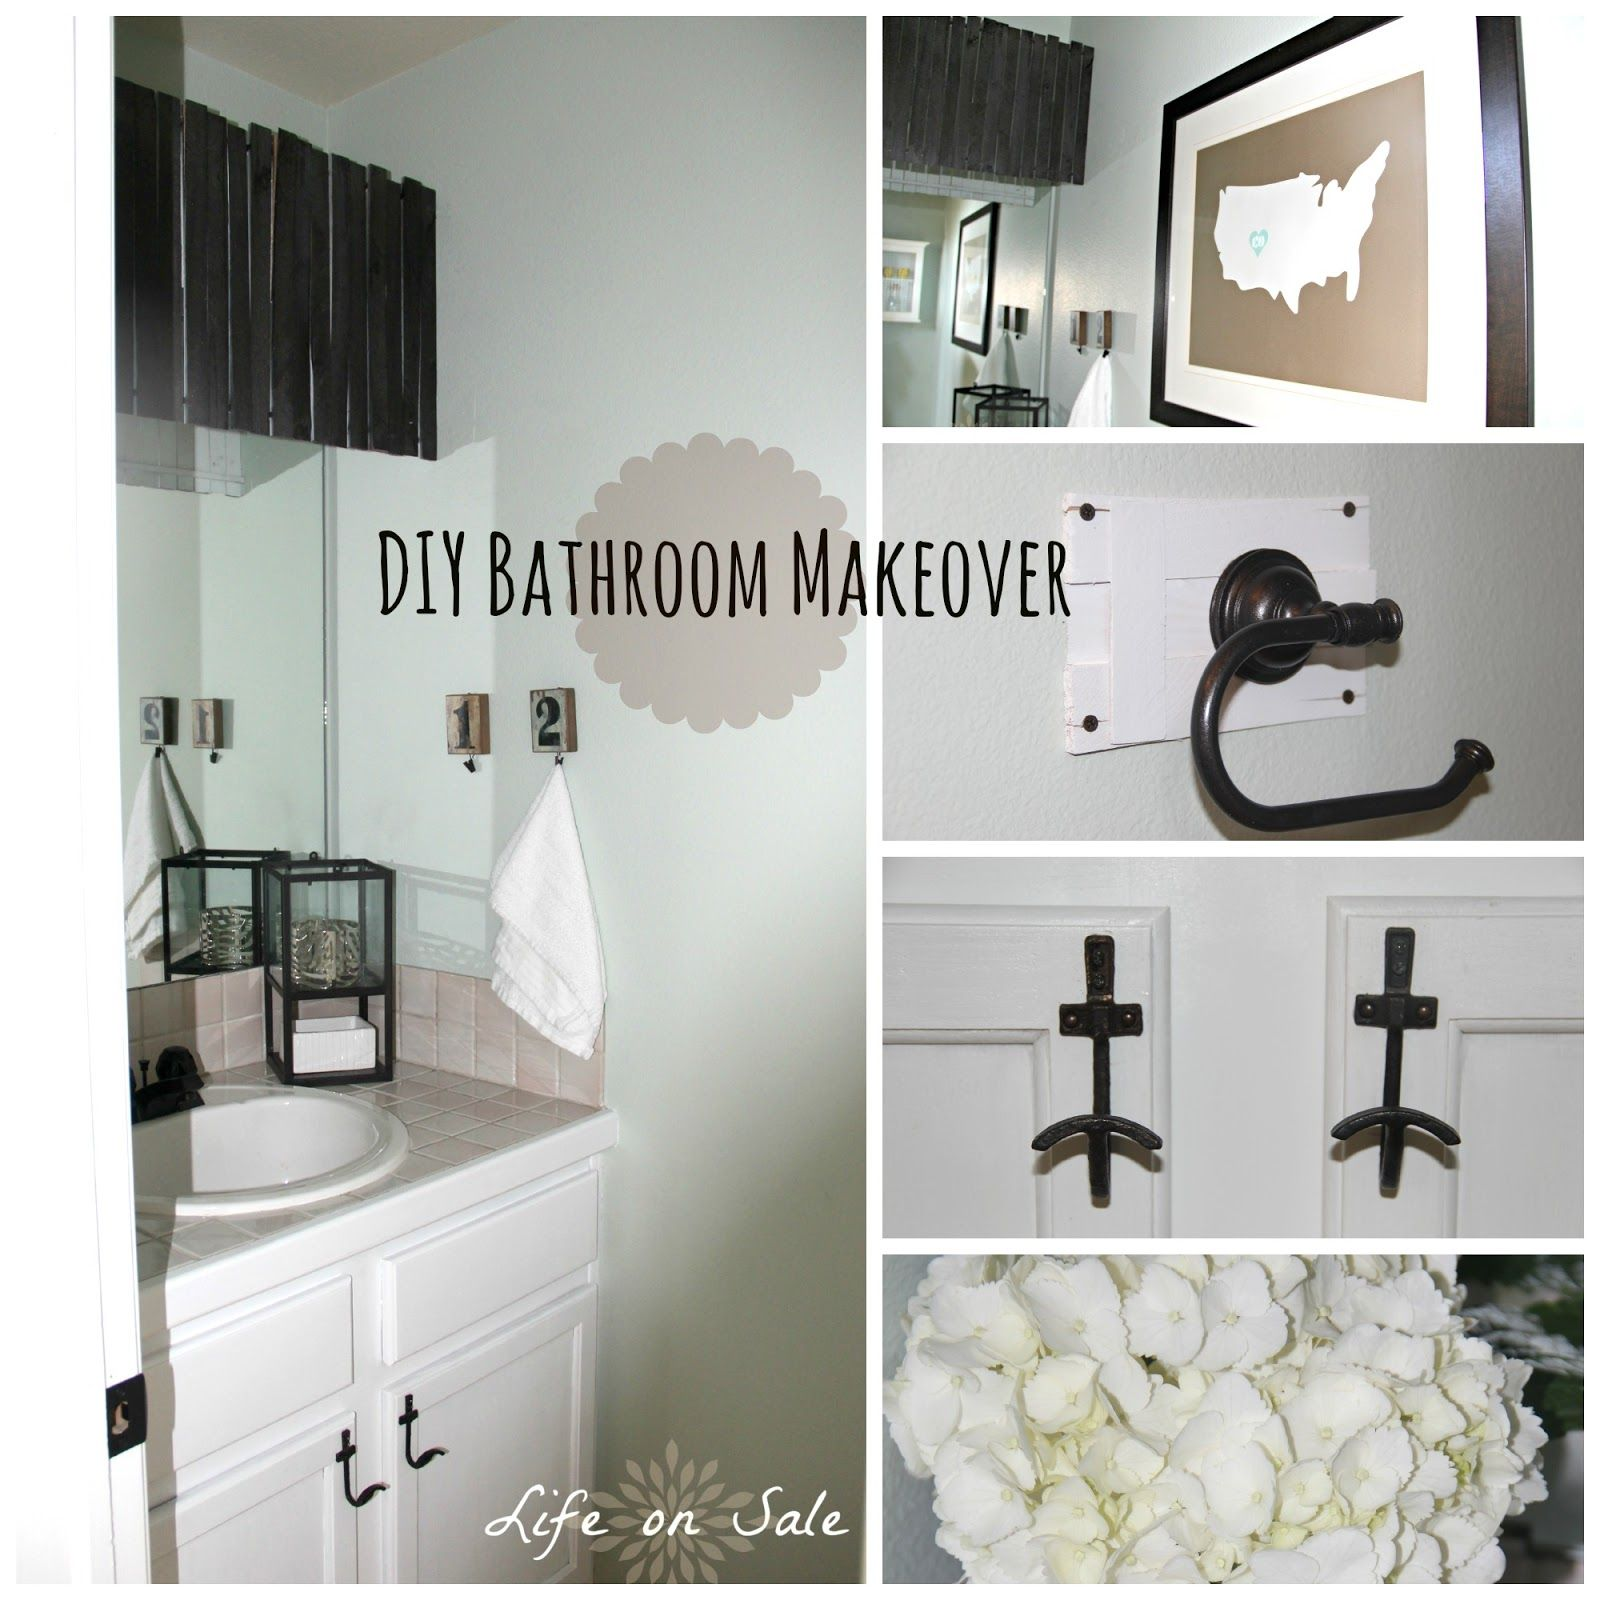 1990s Bathroom Makeover for $26.00! Easy and inexpensive!! | Happy ...